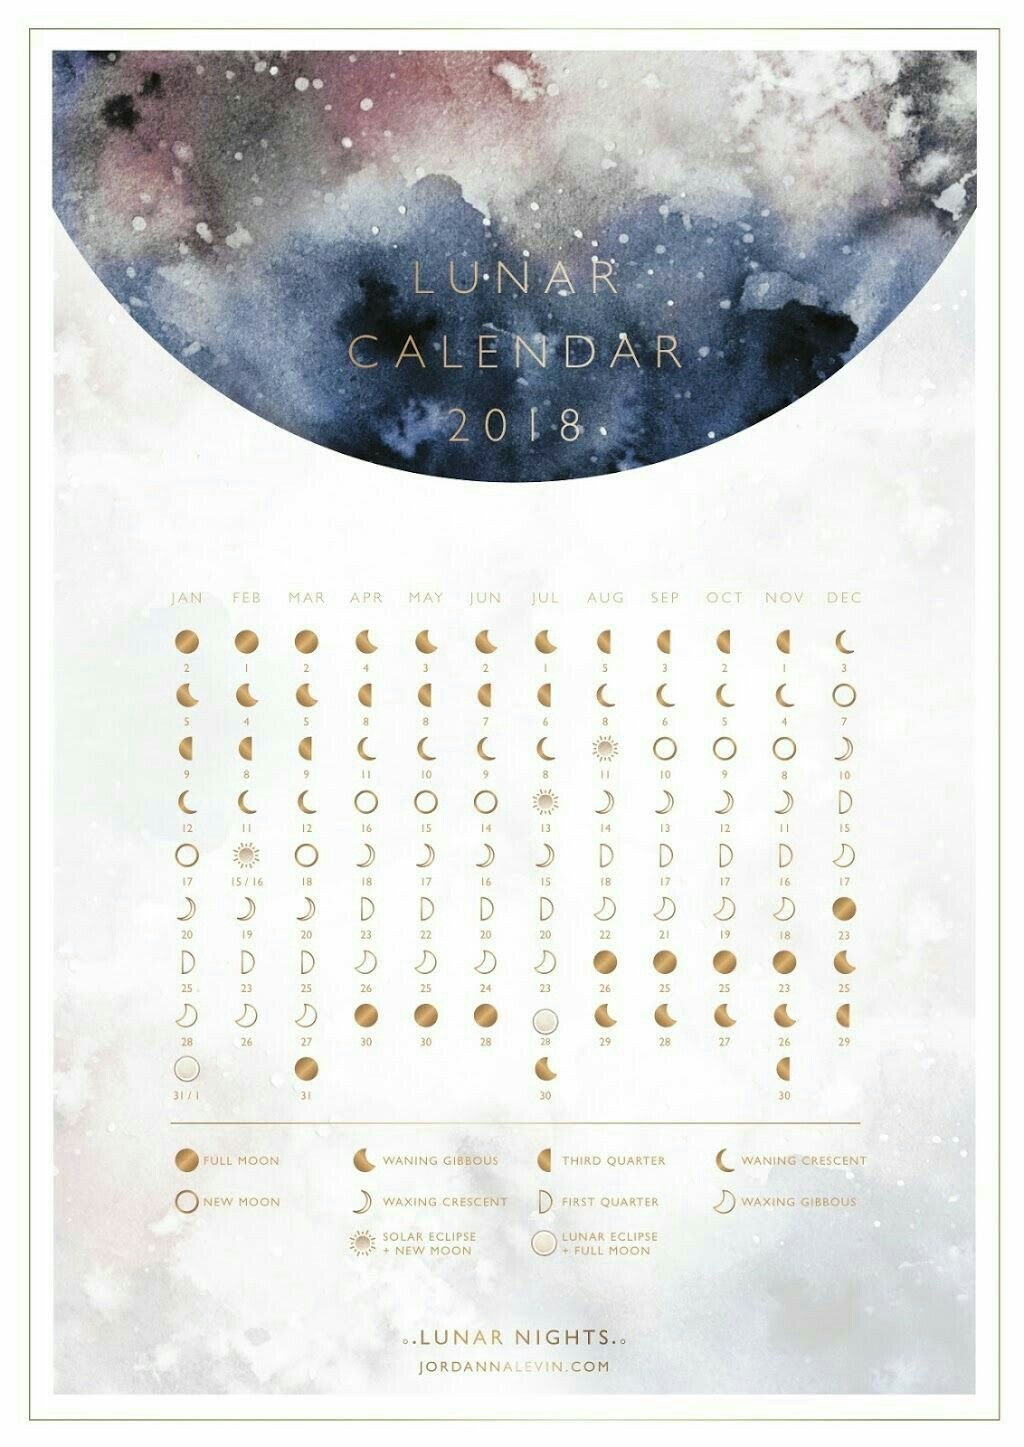 Would Like To Make A Spiral With This Lunar Calendar Moon